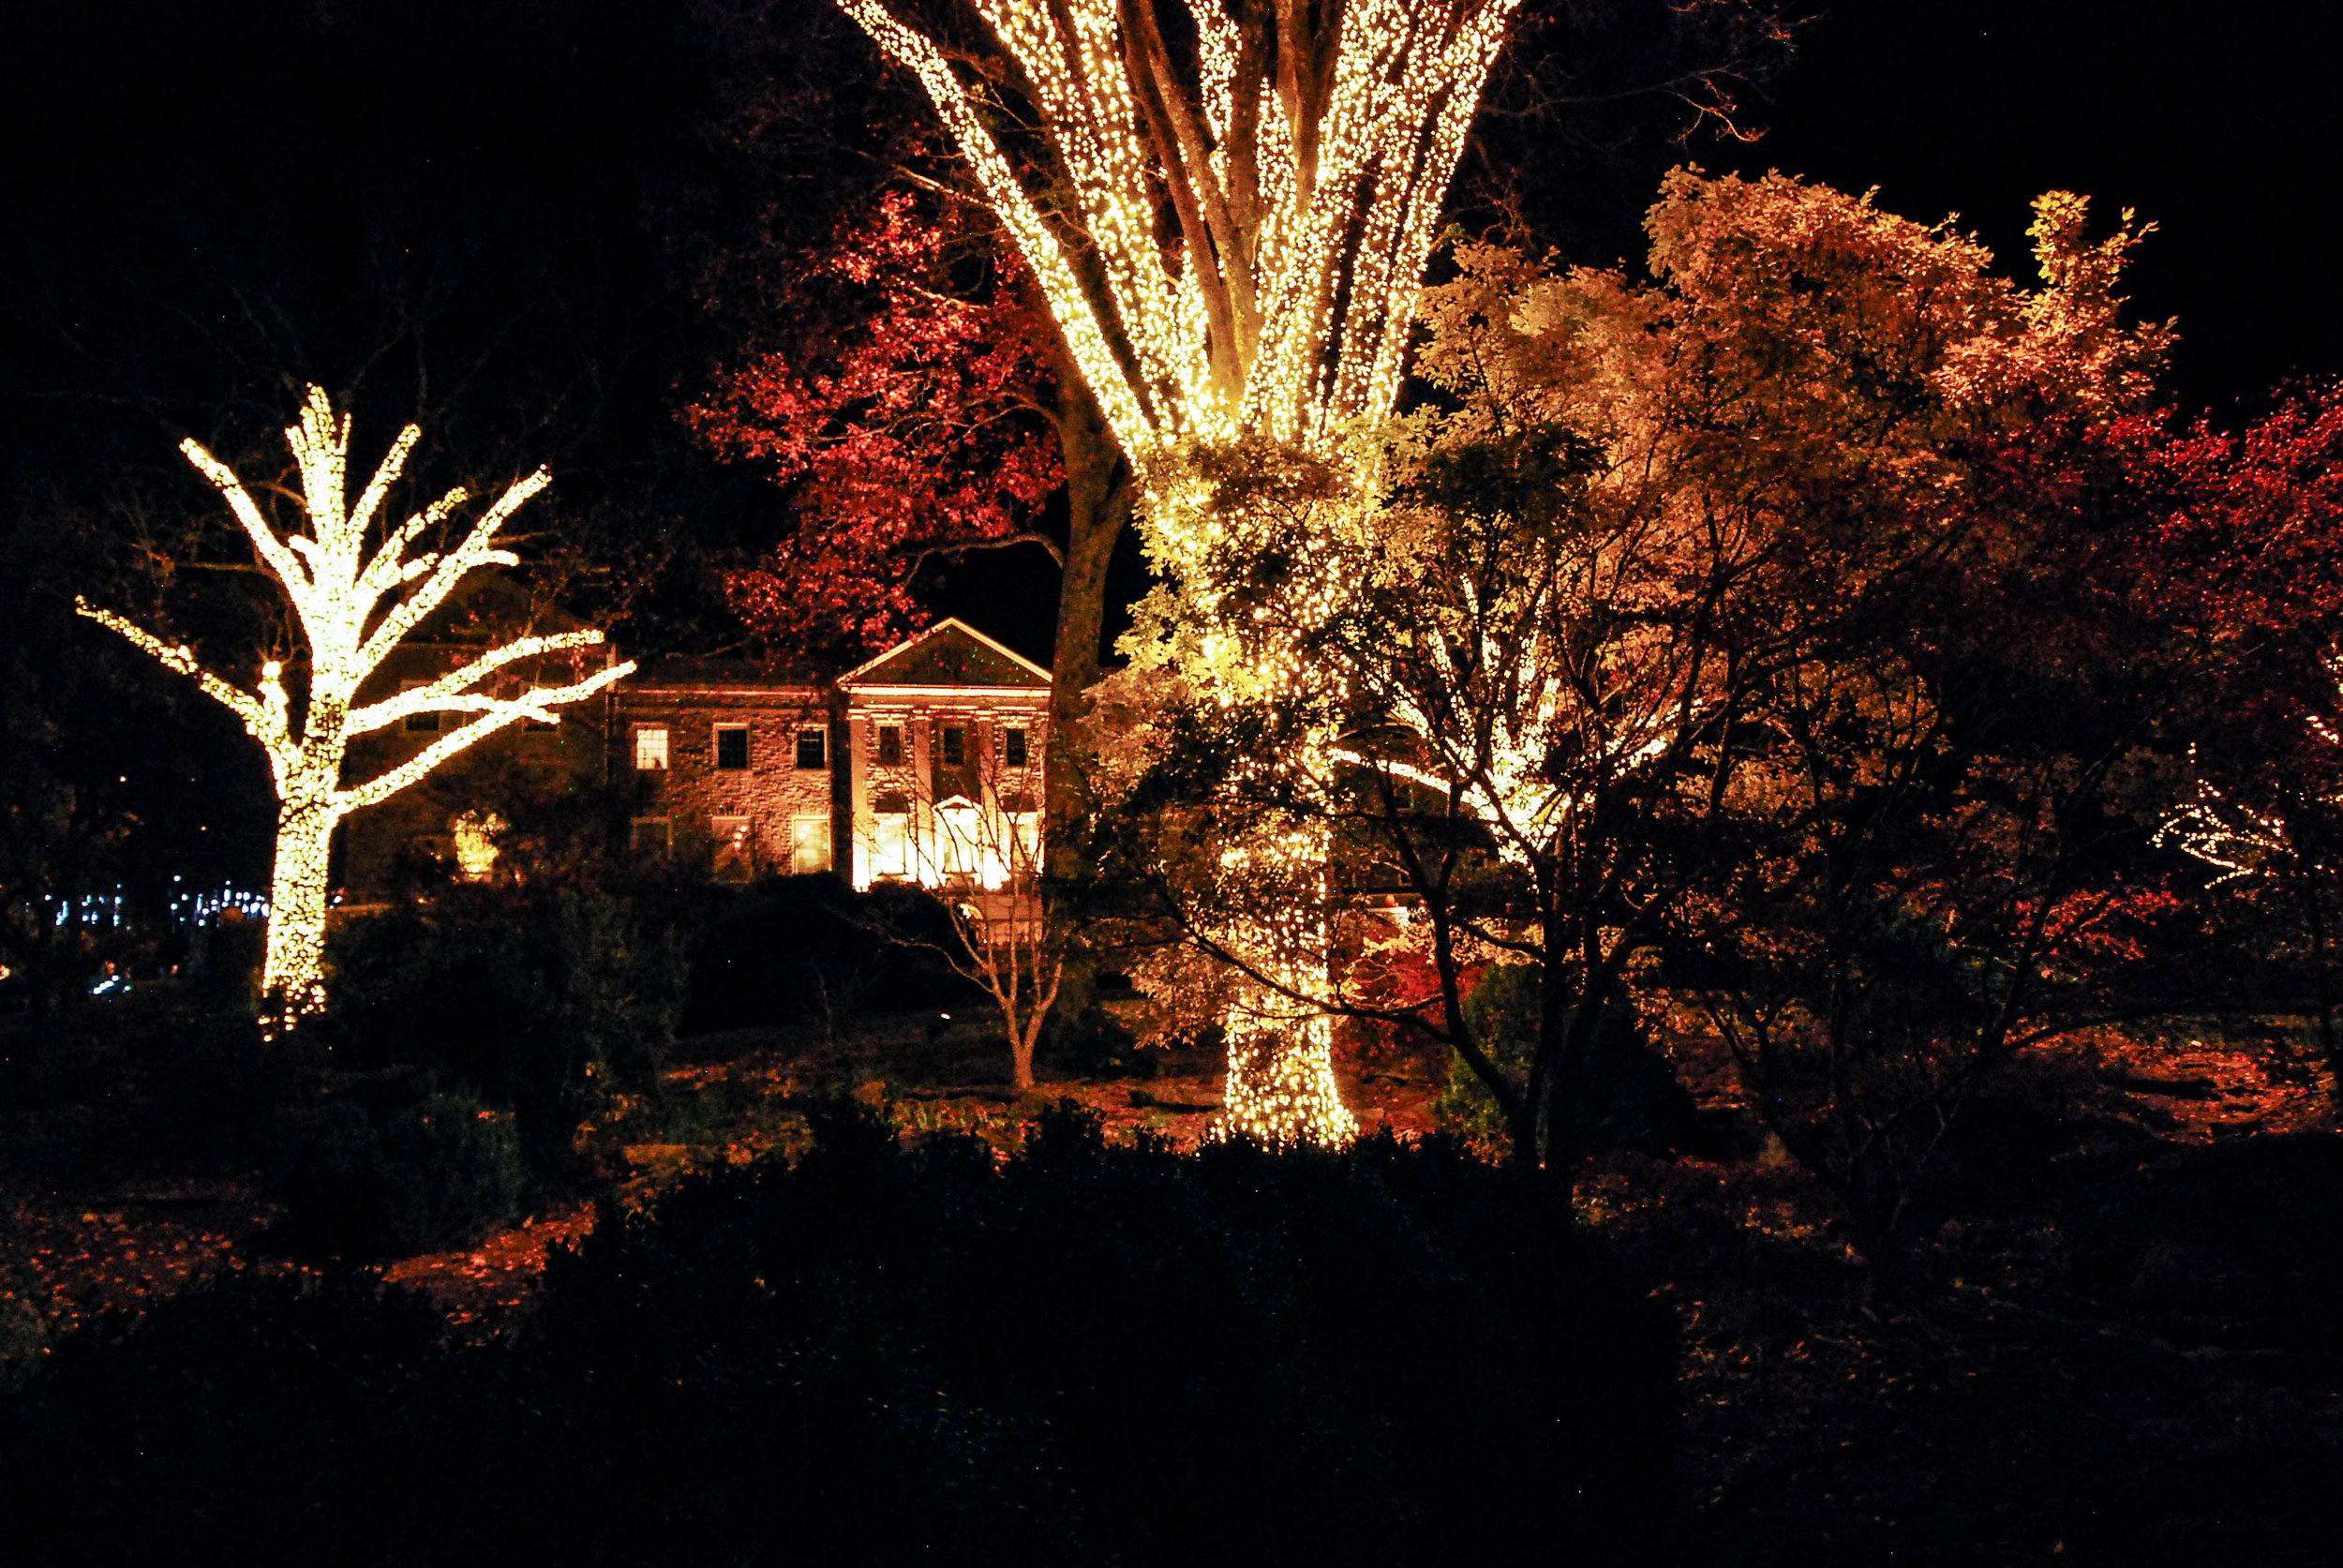 CheekwoodLights17-4.jpg